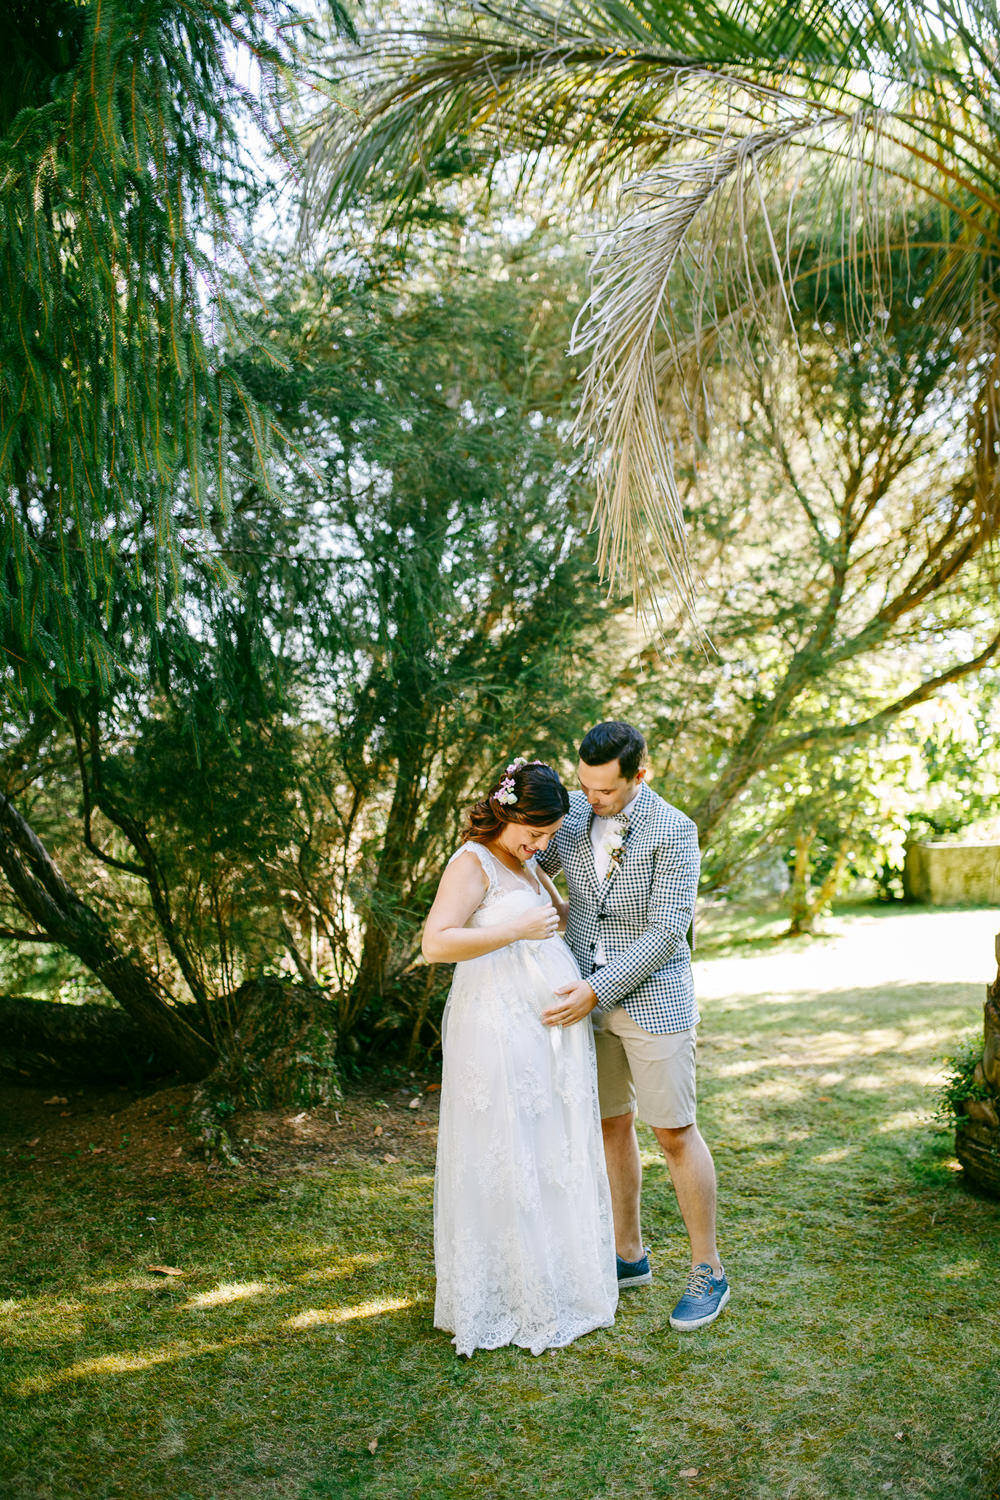 firstlook wedding photos portugal